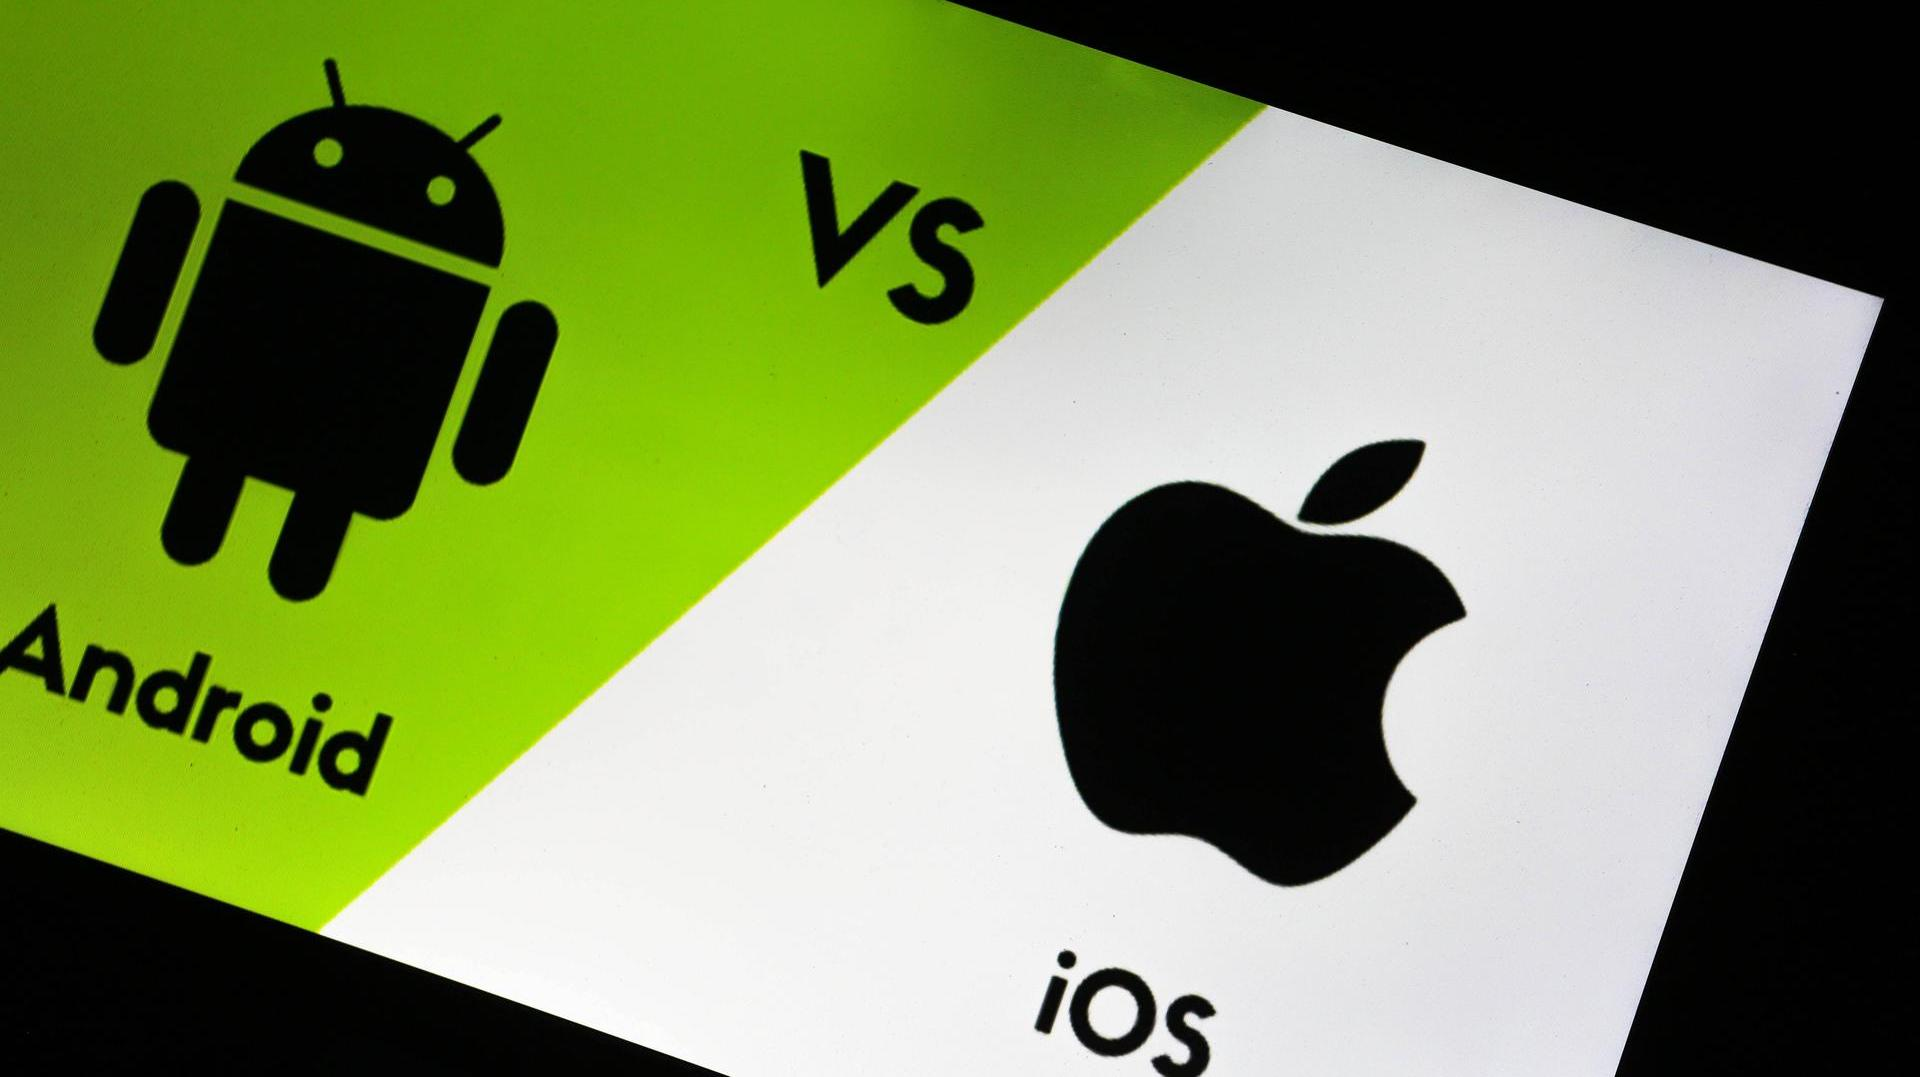 Microsoft recommends Android and Apple iOS